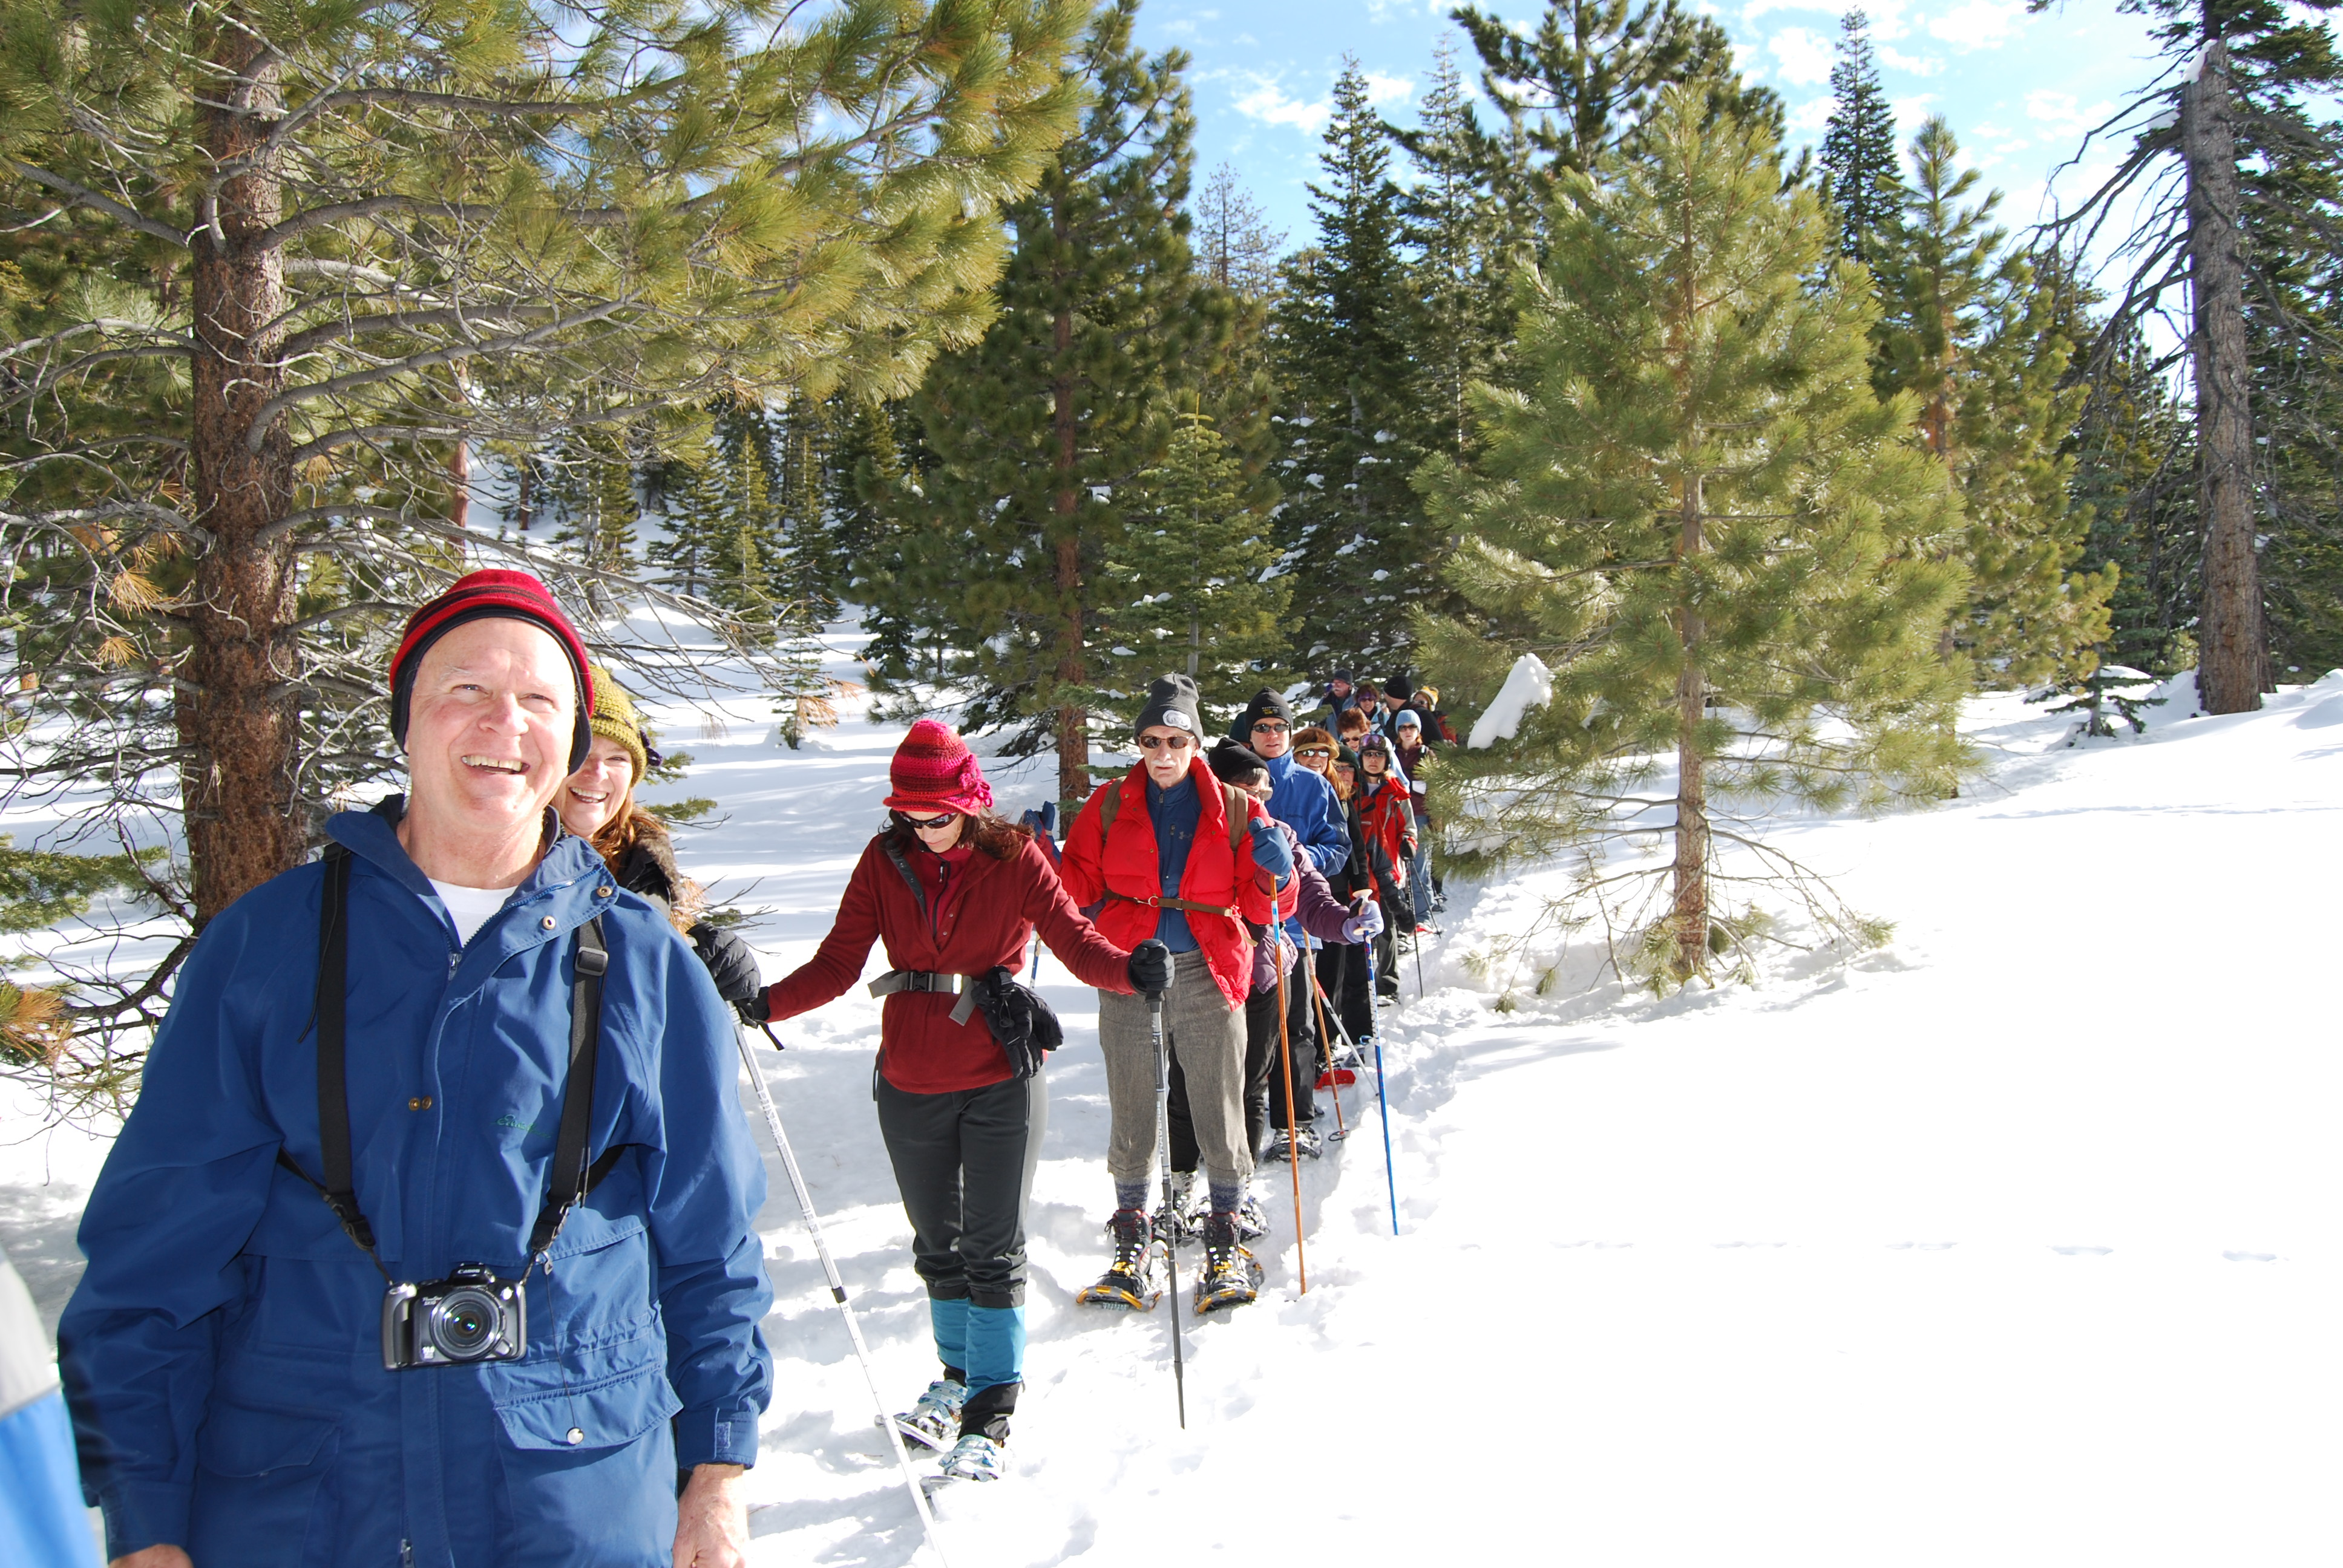 Group of people walking through snow in skis